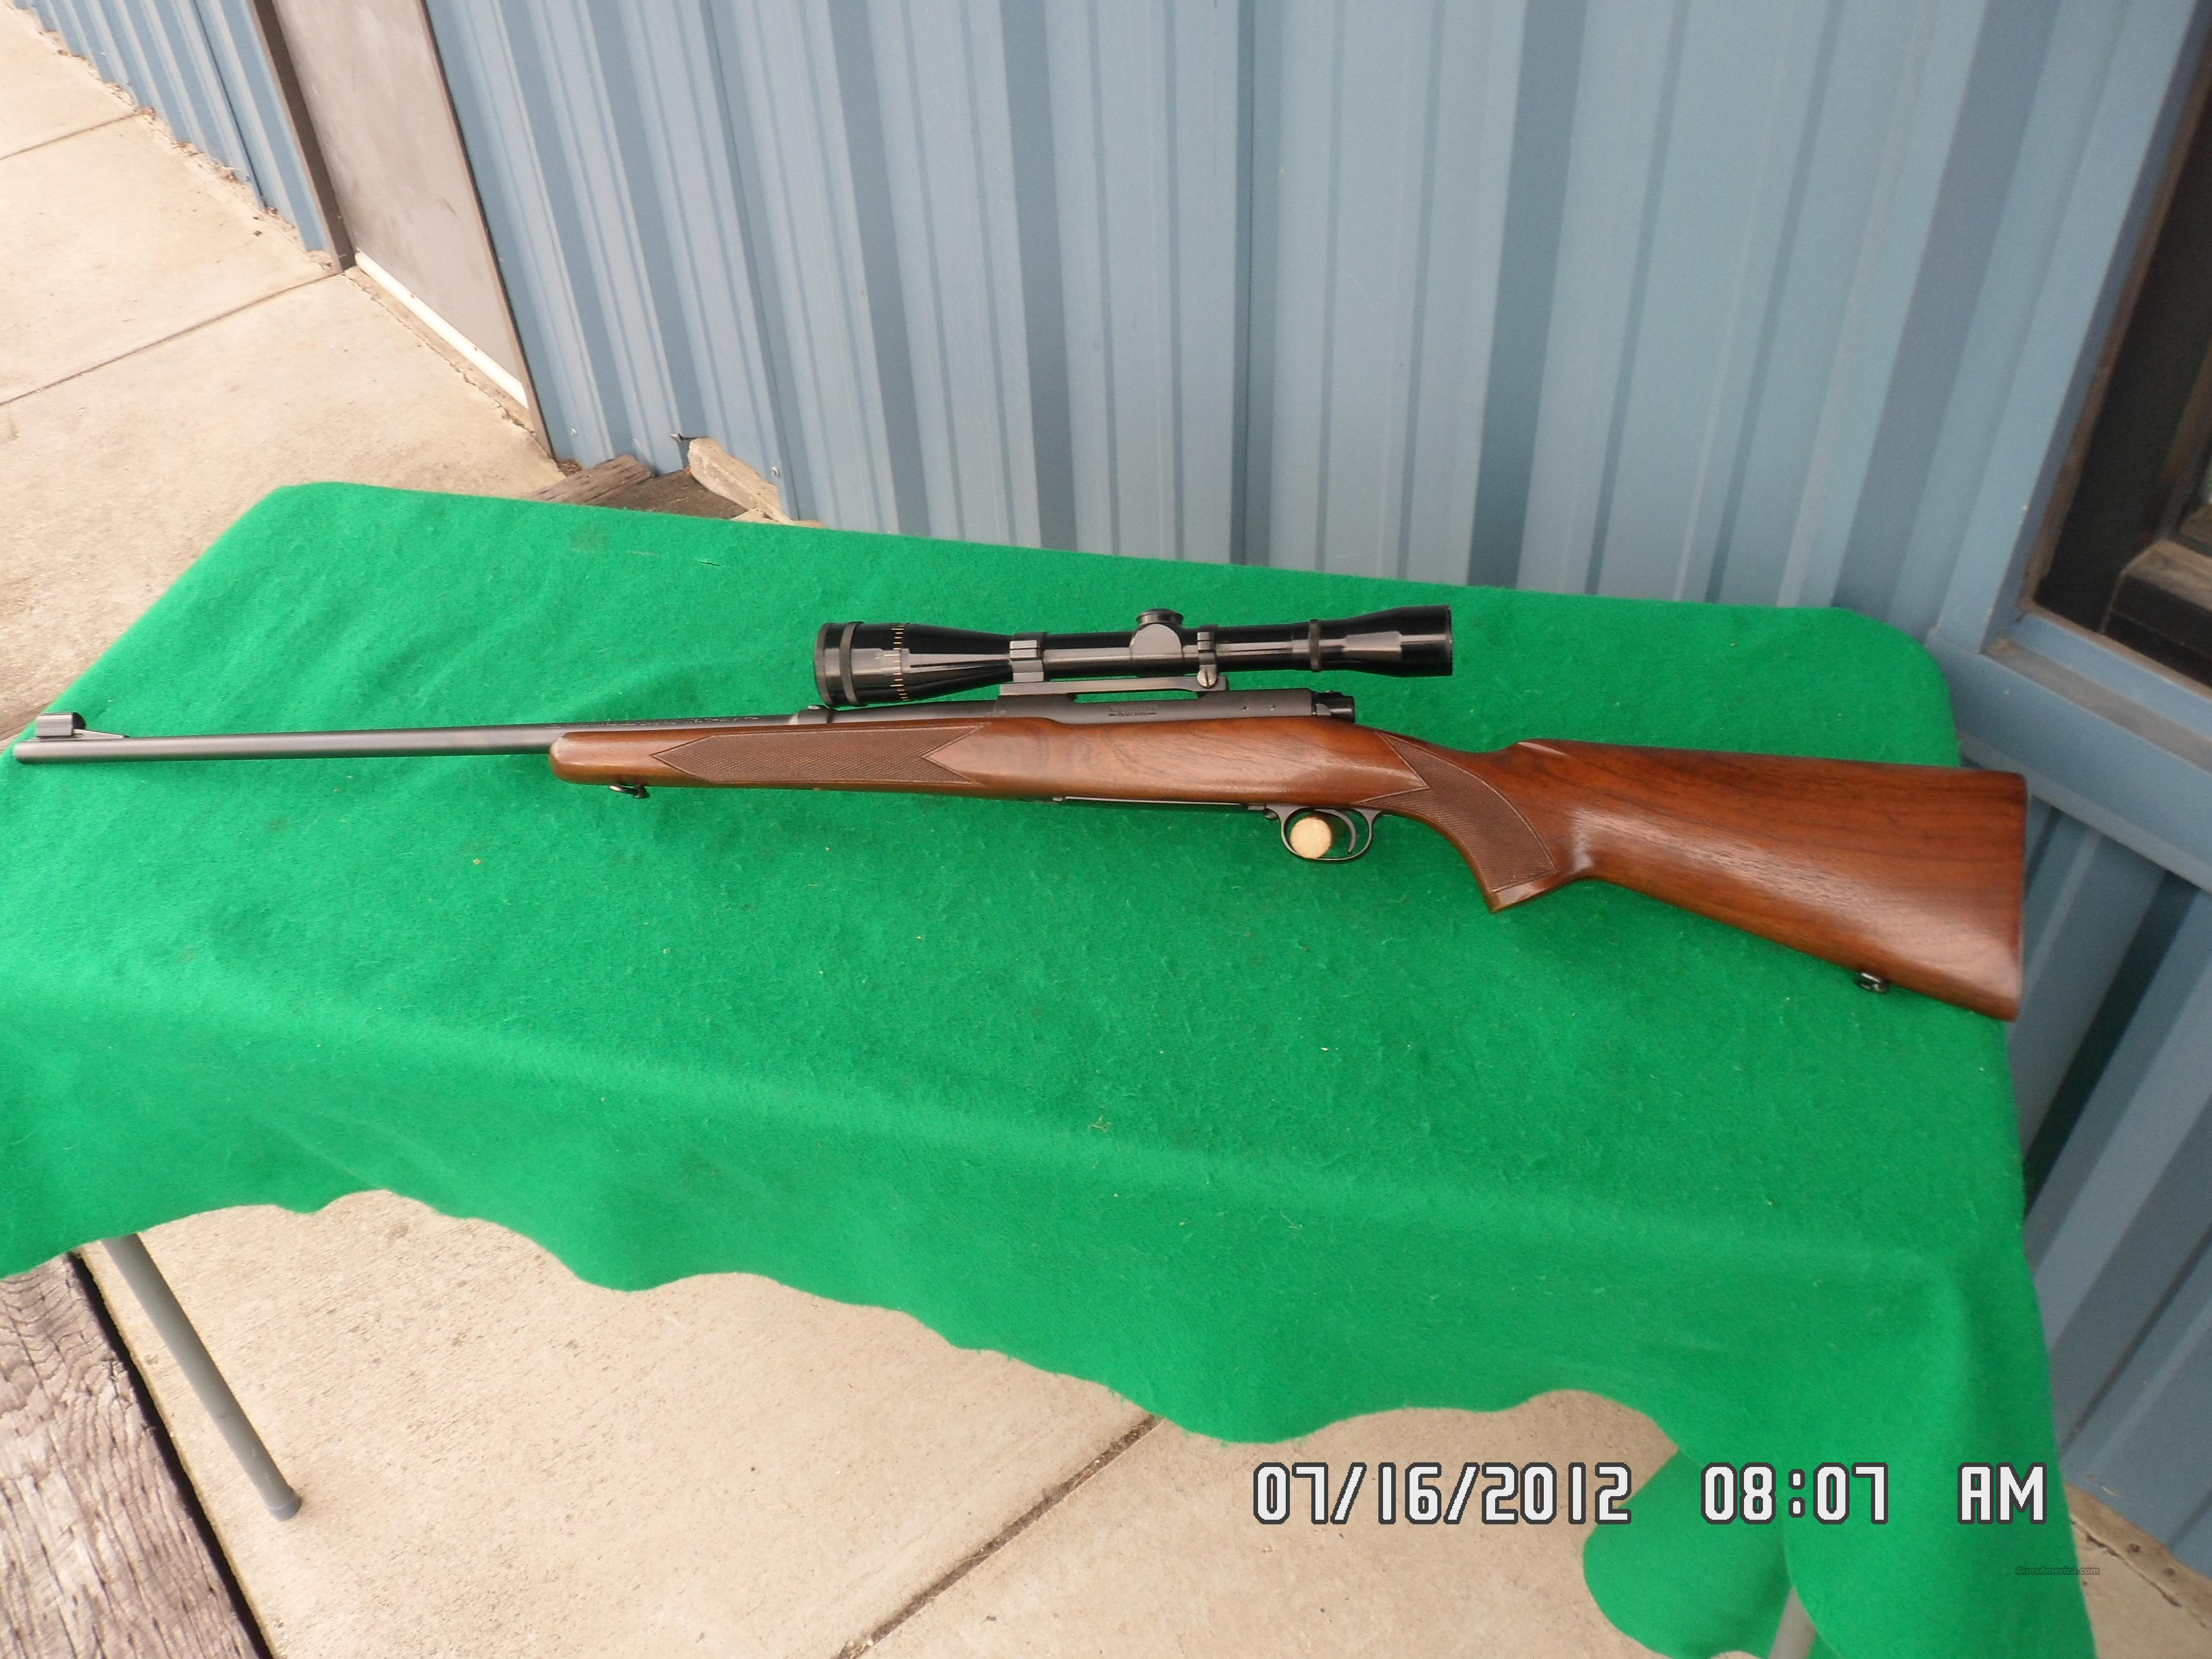 WINCHESTER MODEL 70 STANDARD GRADE 220 SWIFT CAL.1950 ORIGINAL OWNER SIGHTED IN ONLY! 99.5%PLUS  Guns > Rifles > Winchester Rifles - Modern Bolt/Auto/Single > Model 70 > Pre-64